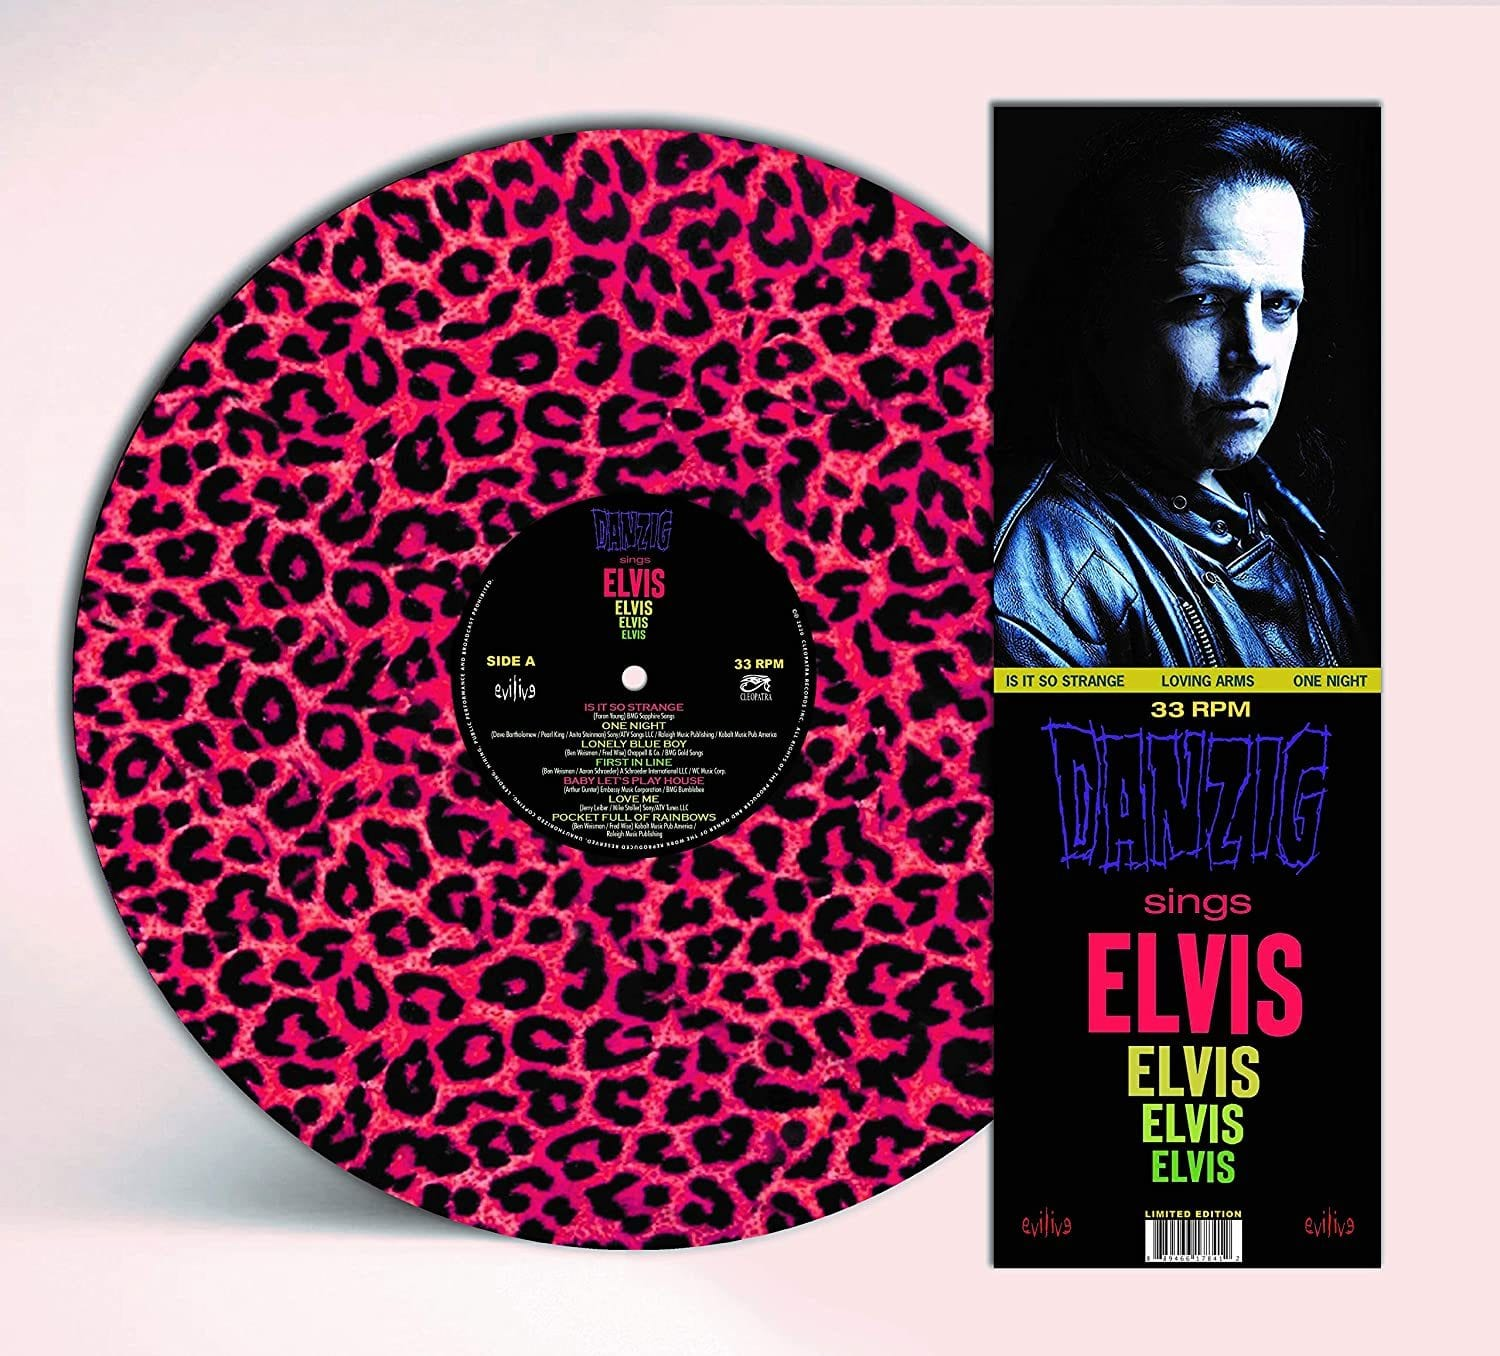 Danzig - Sings Elvis [LP] (Leopard Skin Print Picture Disc, limited) - Urban Vinyl | Records, Headphones, and more.